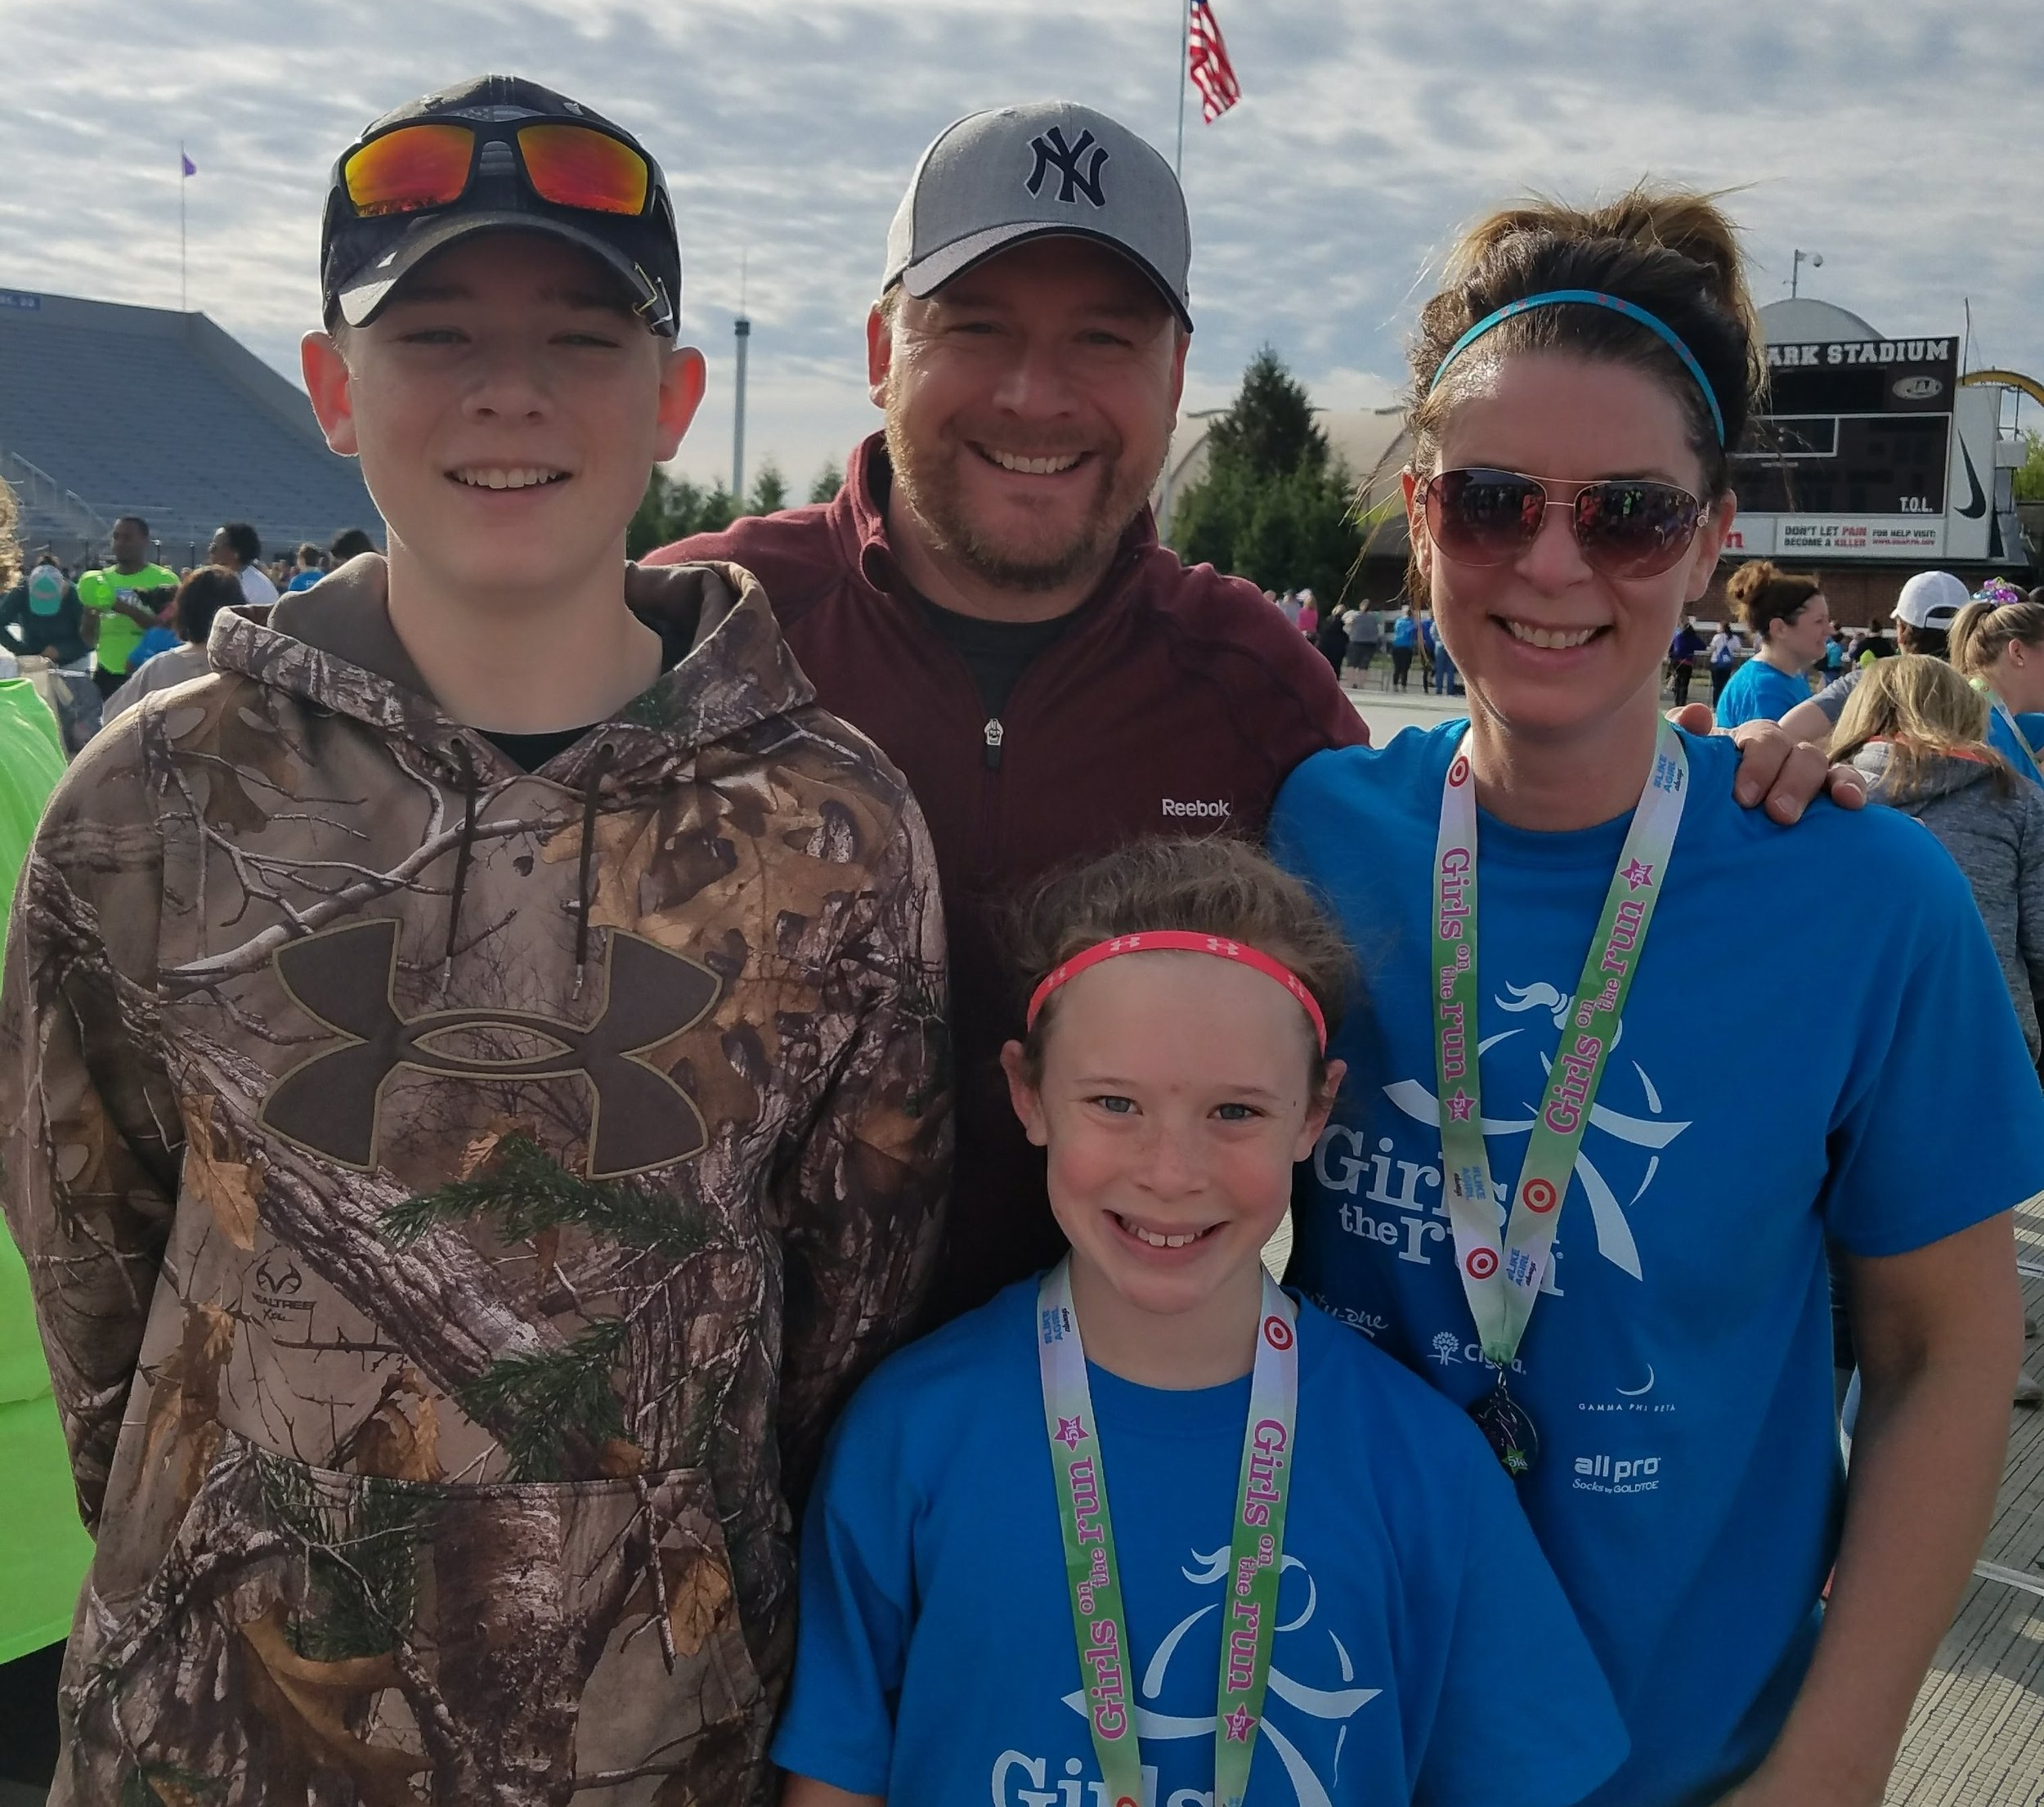 Gretchen and her family after completing the Girls on the Run 5K